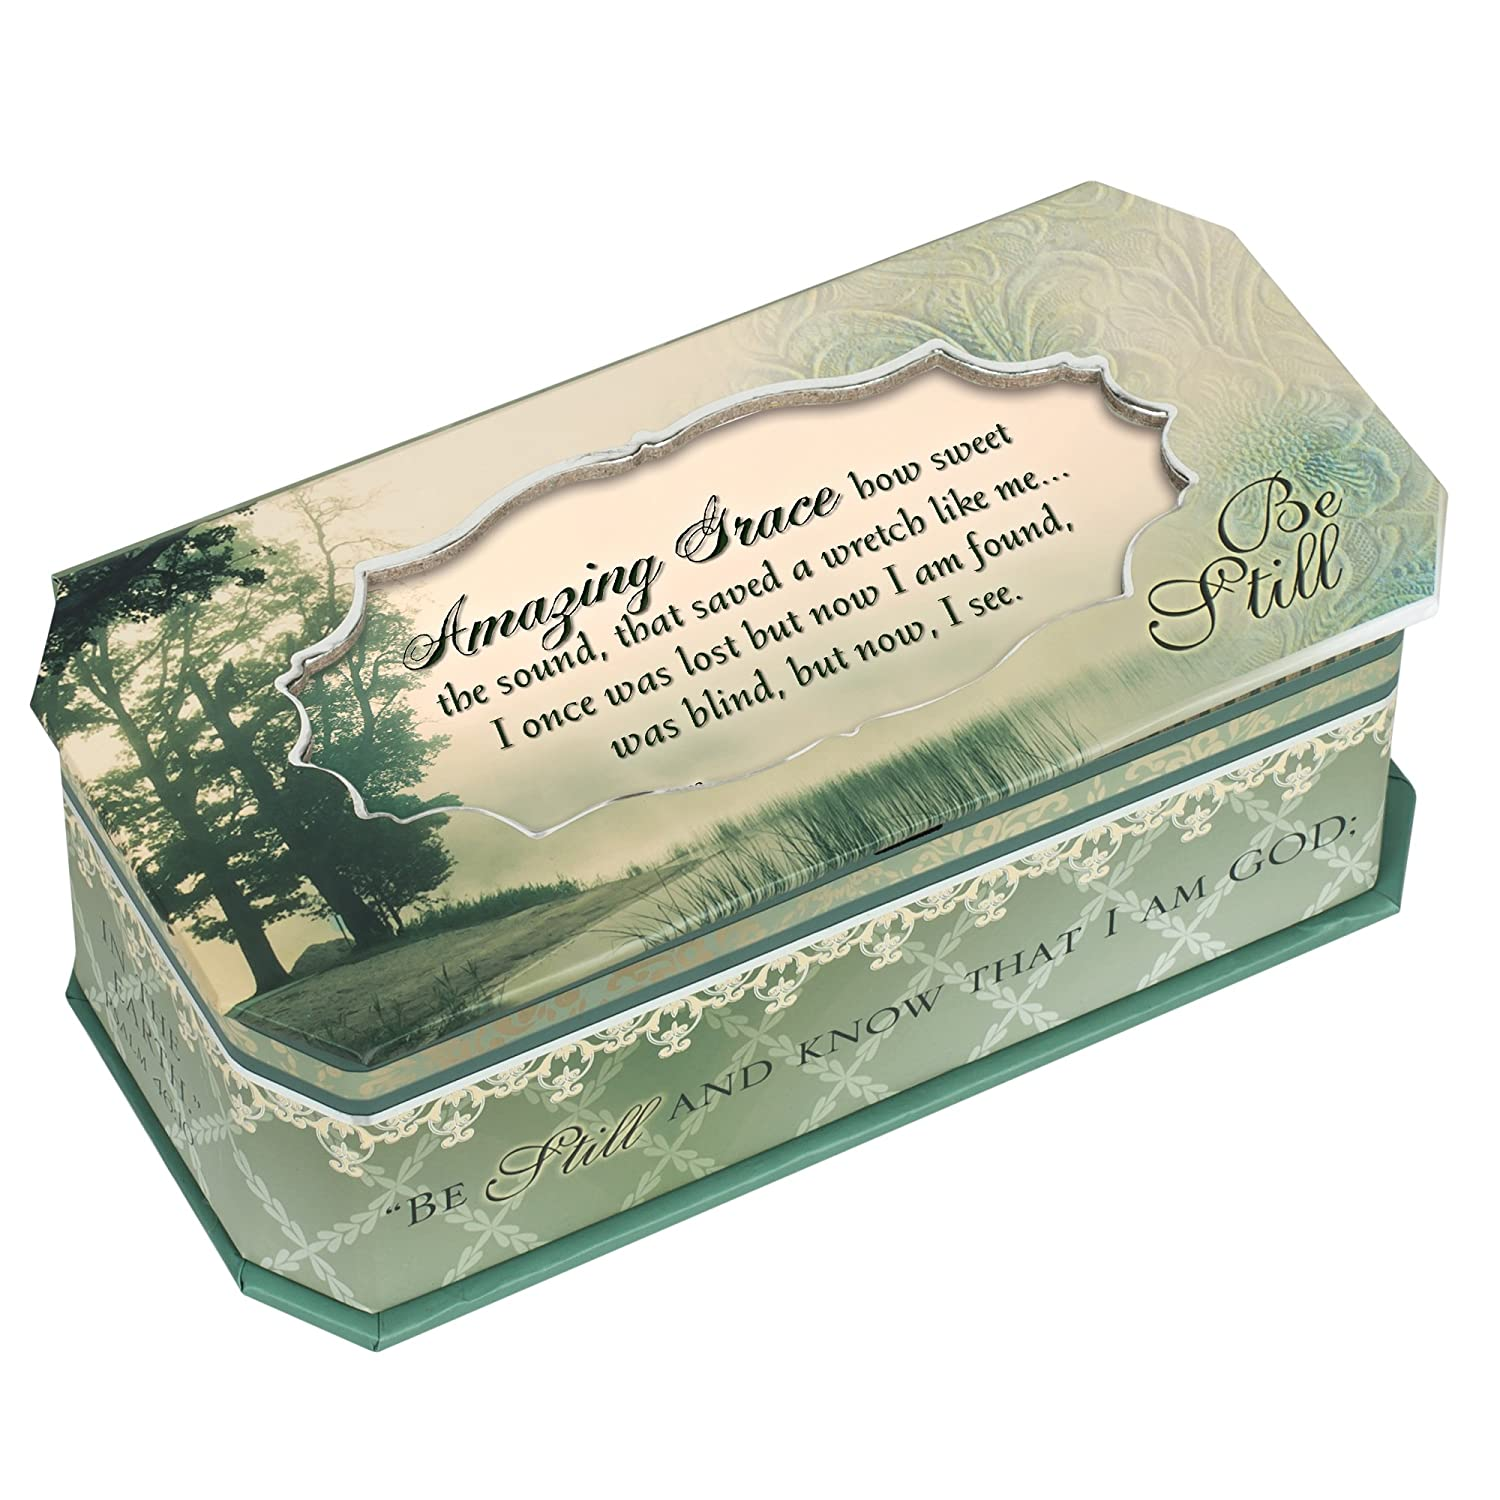 Cottage Garden Amazing Grace Be Still Petite Belle Papier Musical Keepsake Jewelry Box Plays Song Amazing Grace